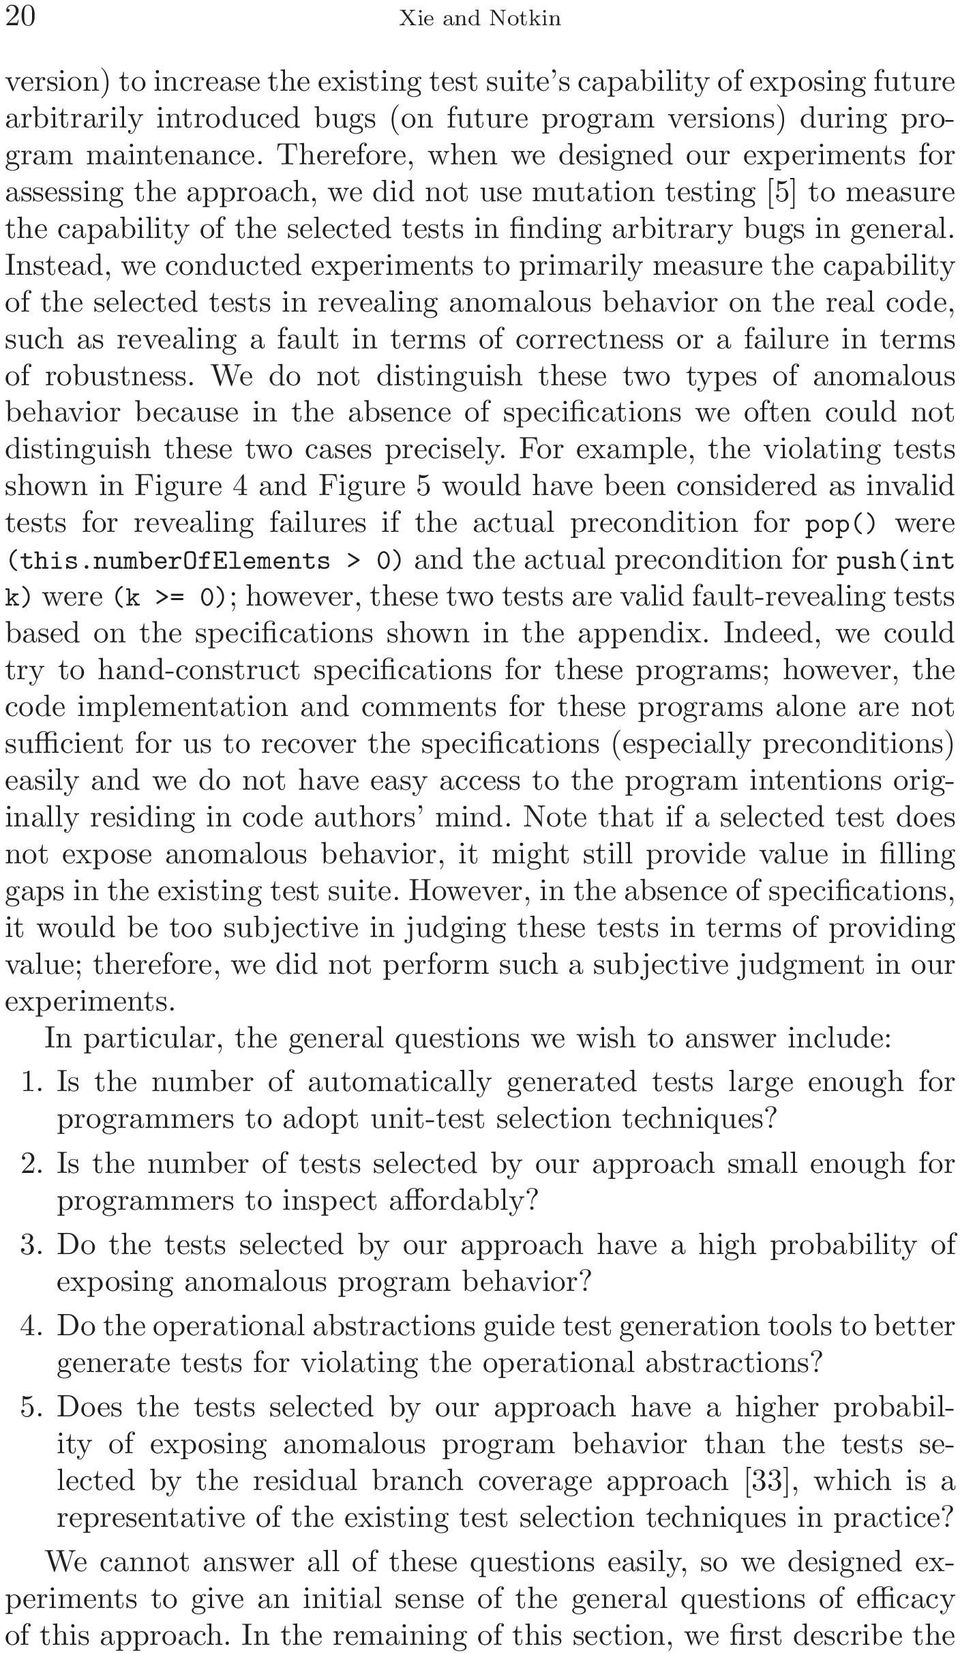 Instead, we conducted experiments to primarily measure the capability of the selected tests in revealing anomalous behavior on the real code, such as revealing a fault in terms of correctness or a